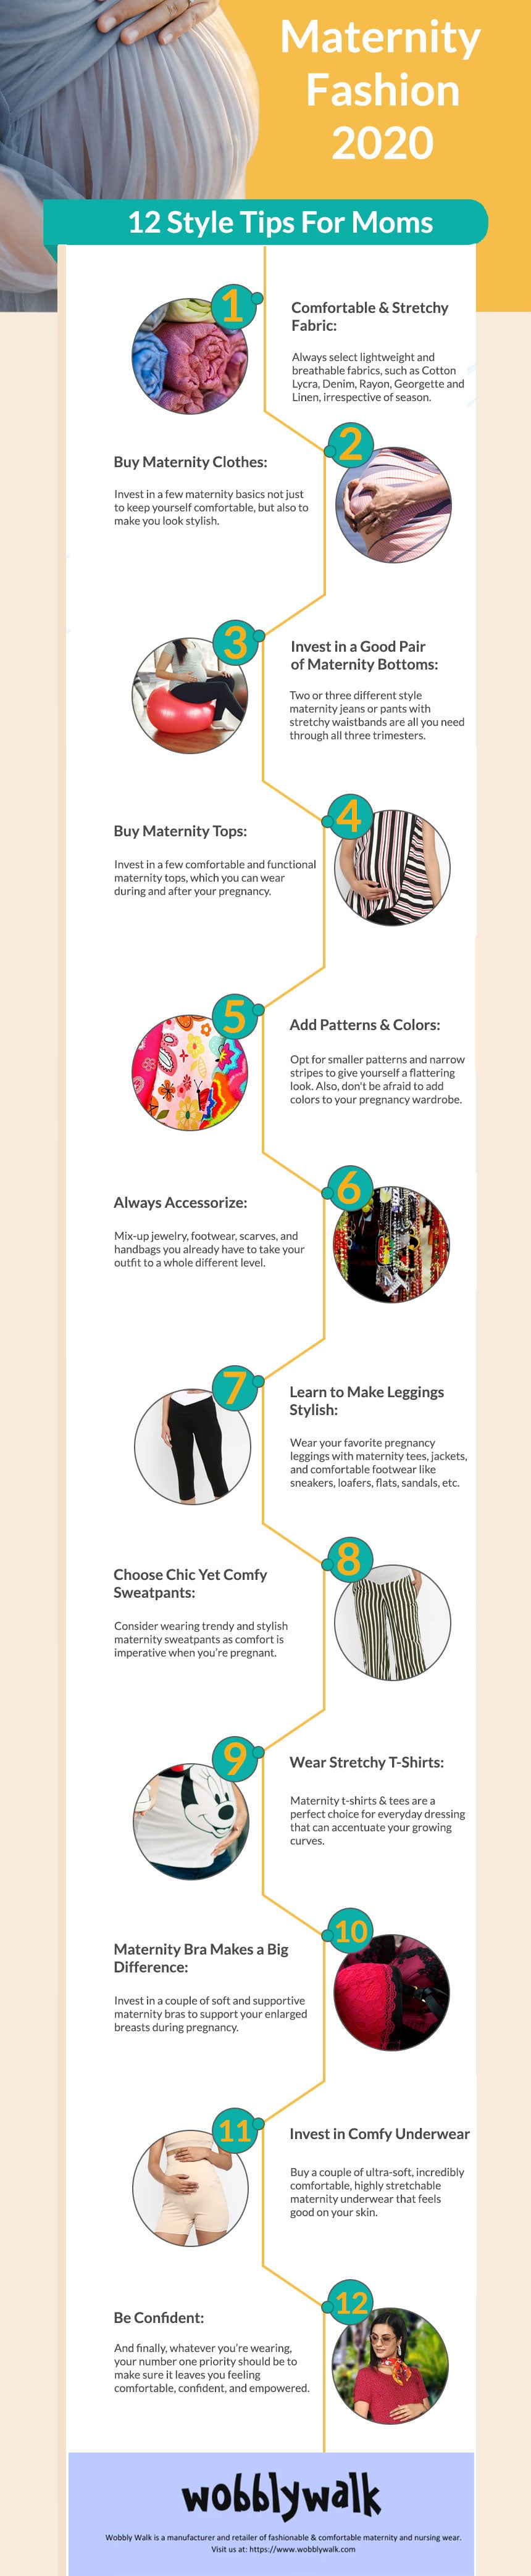 Maternity Fashion - Infographic